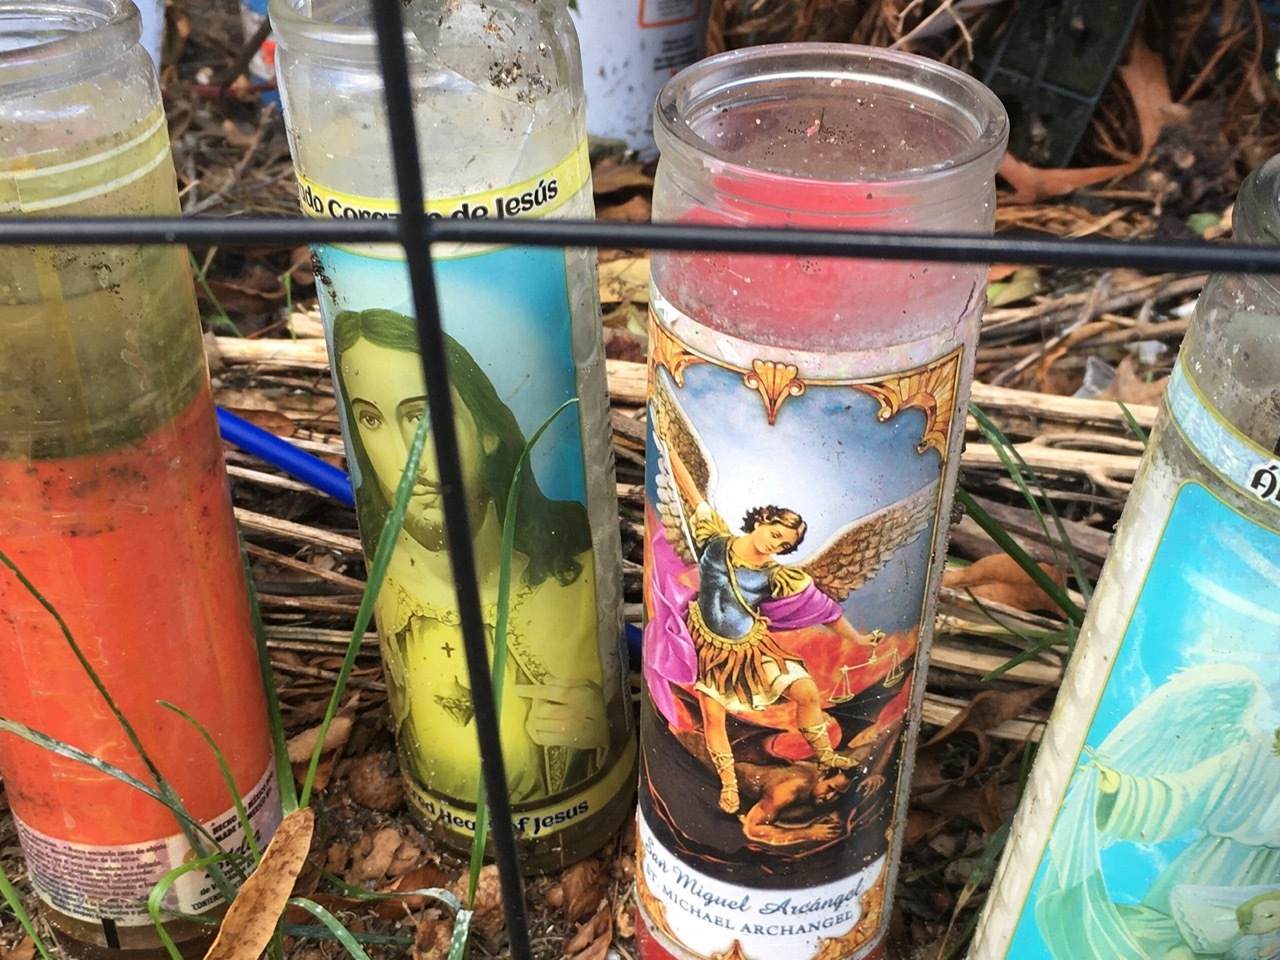 A cluster of religious candles is the focal point of a roadside memorial in Quogue.